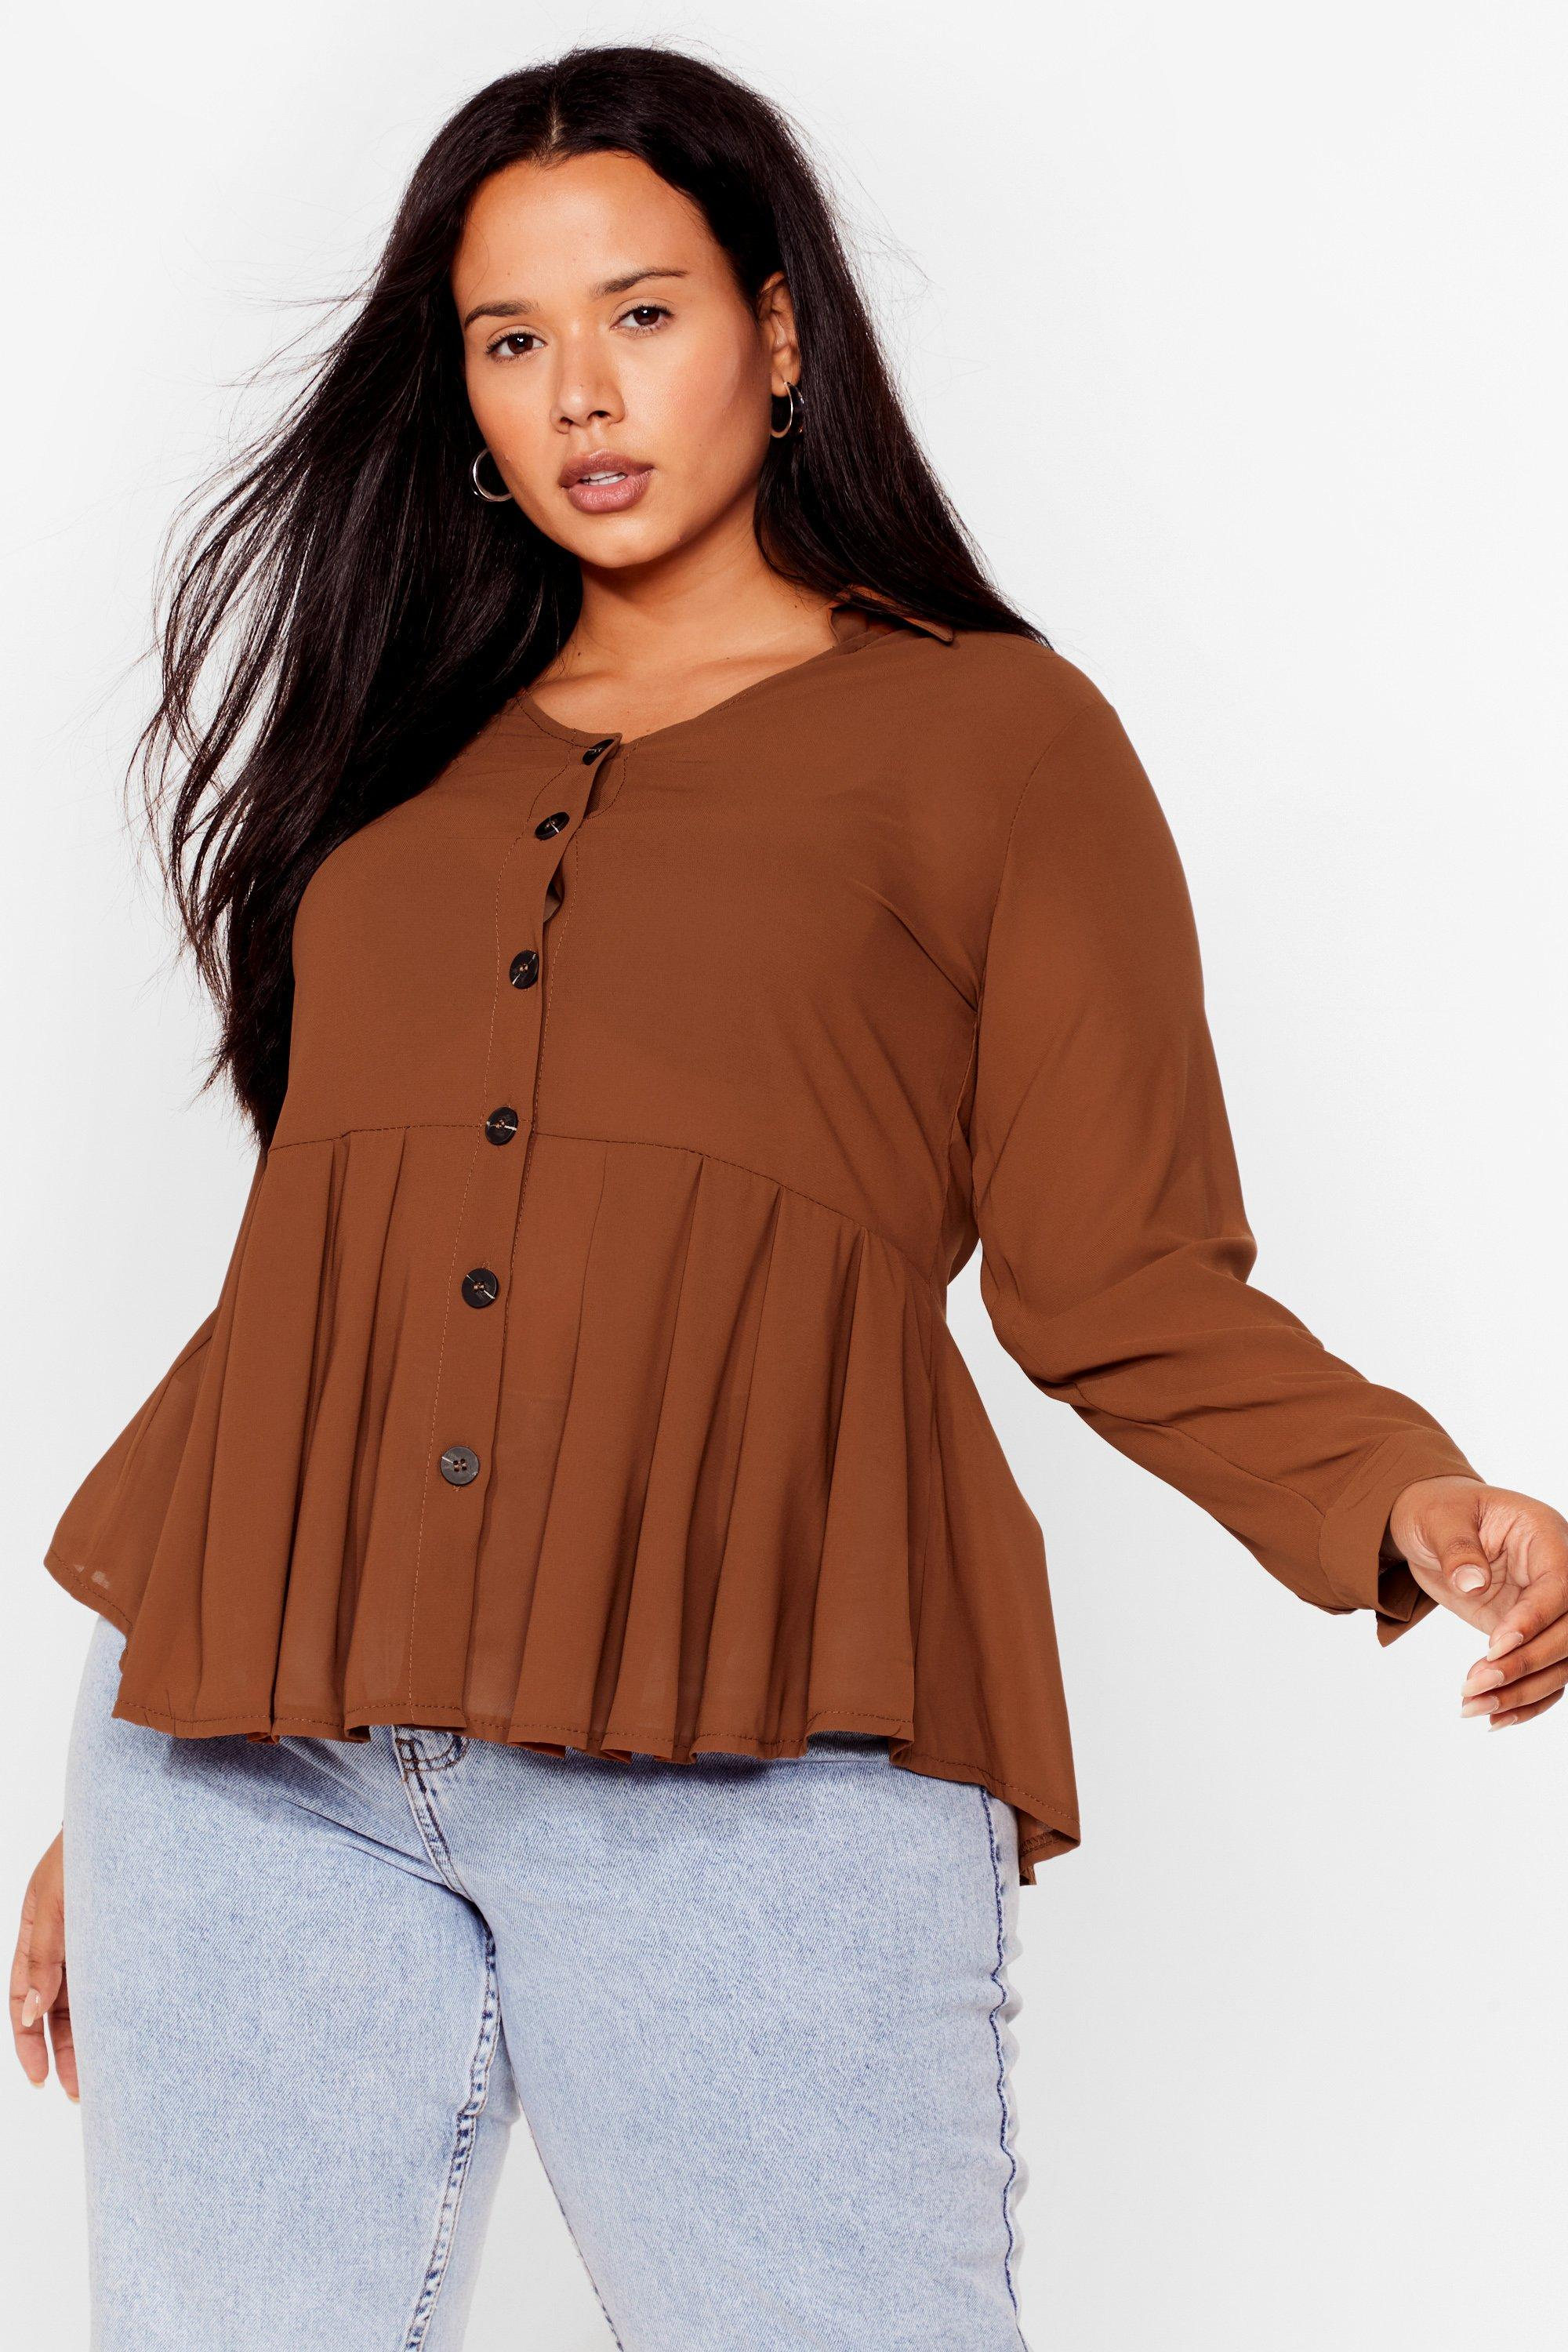 Button the Ball Plus Relaxed Top 6